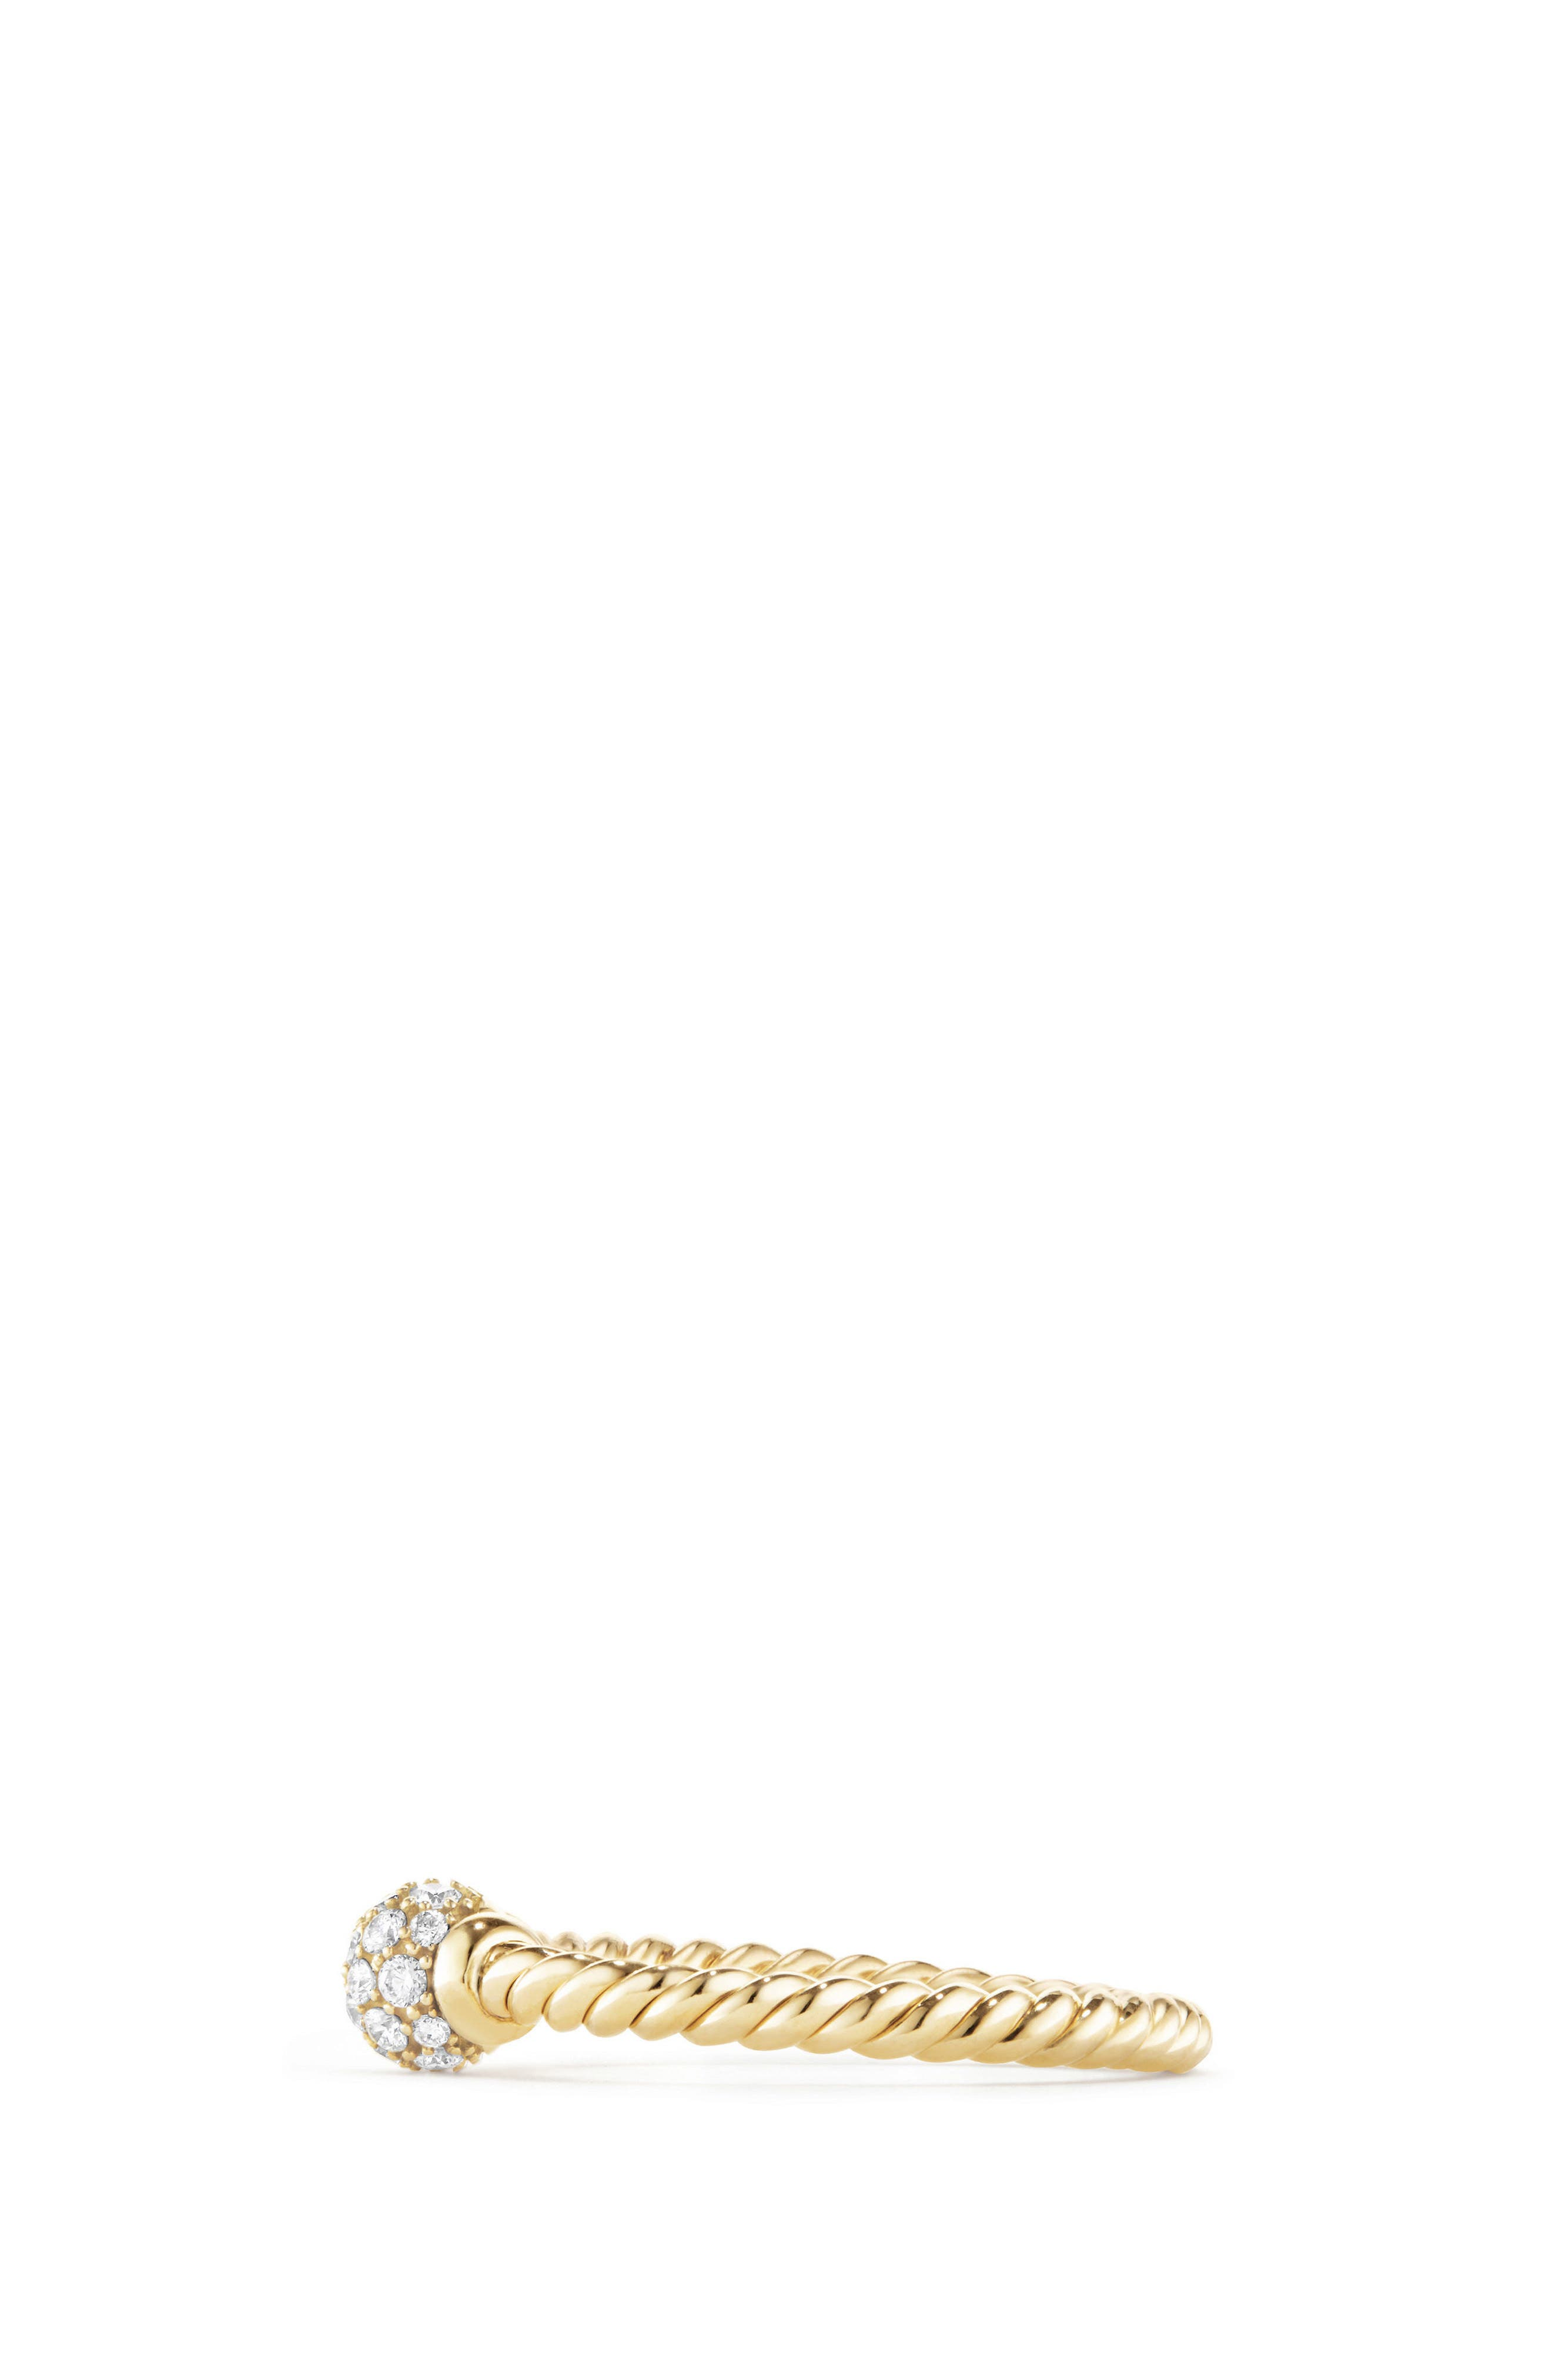 Solari Station Ring with Diamonds in 18K Gold,                             Alternate thumbnail 2, color,                             YELLOW GOLD/ DIAMOND